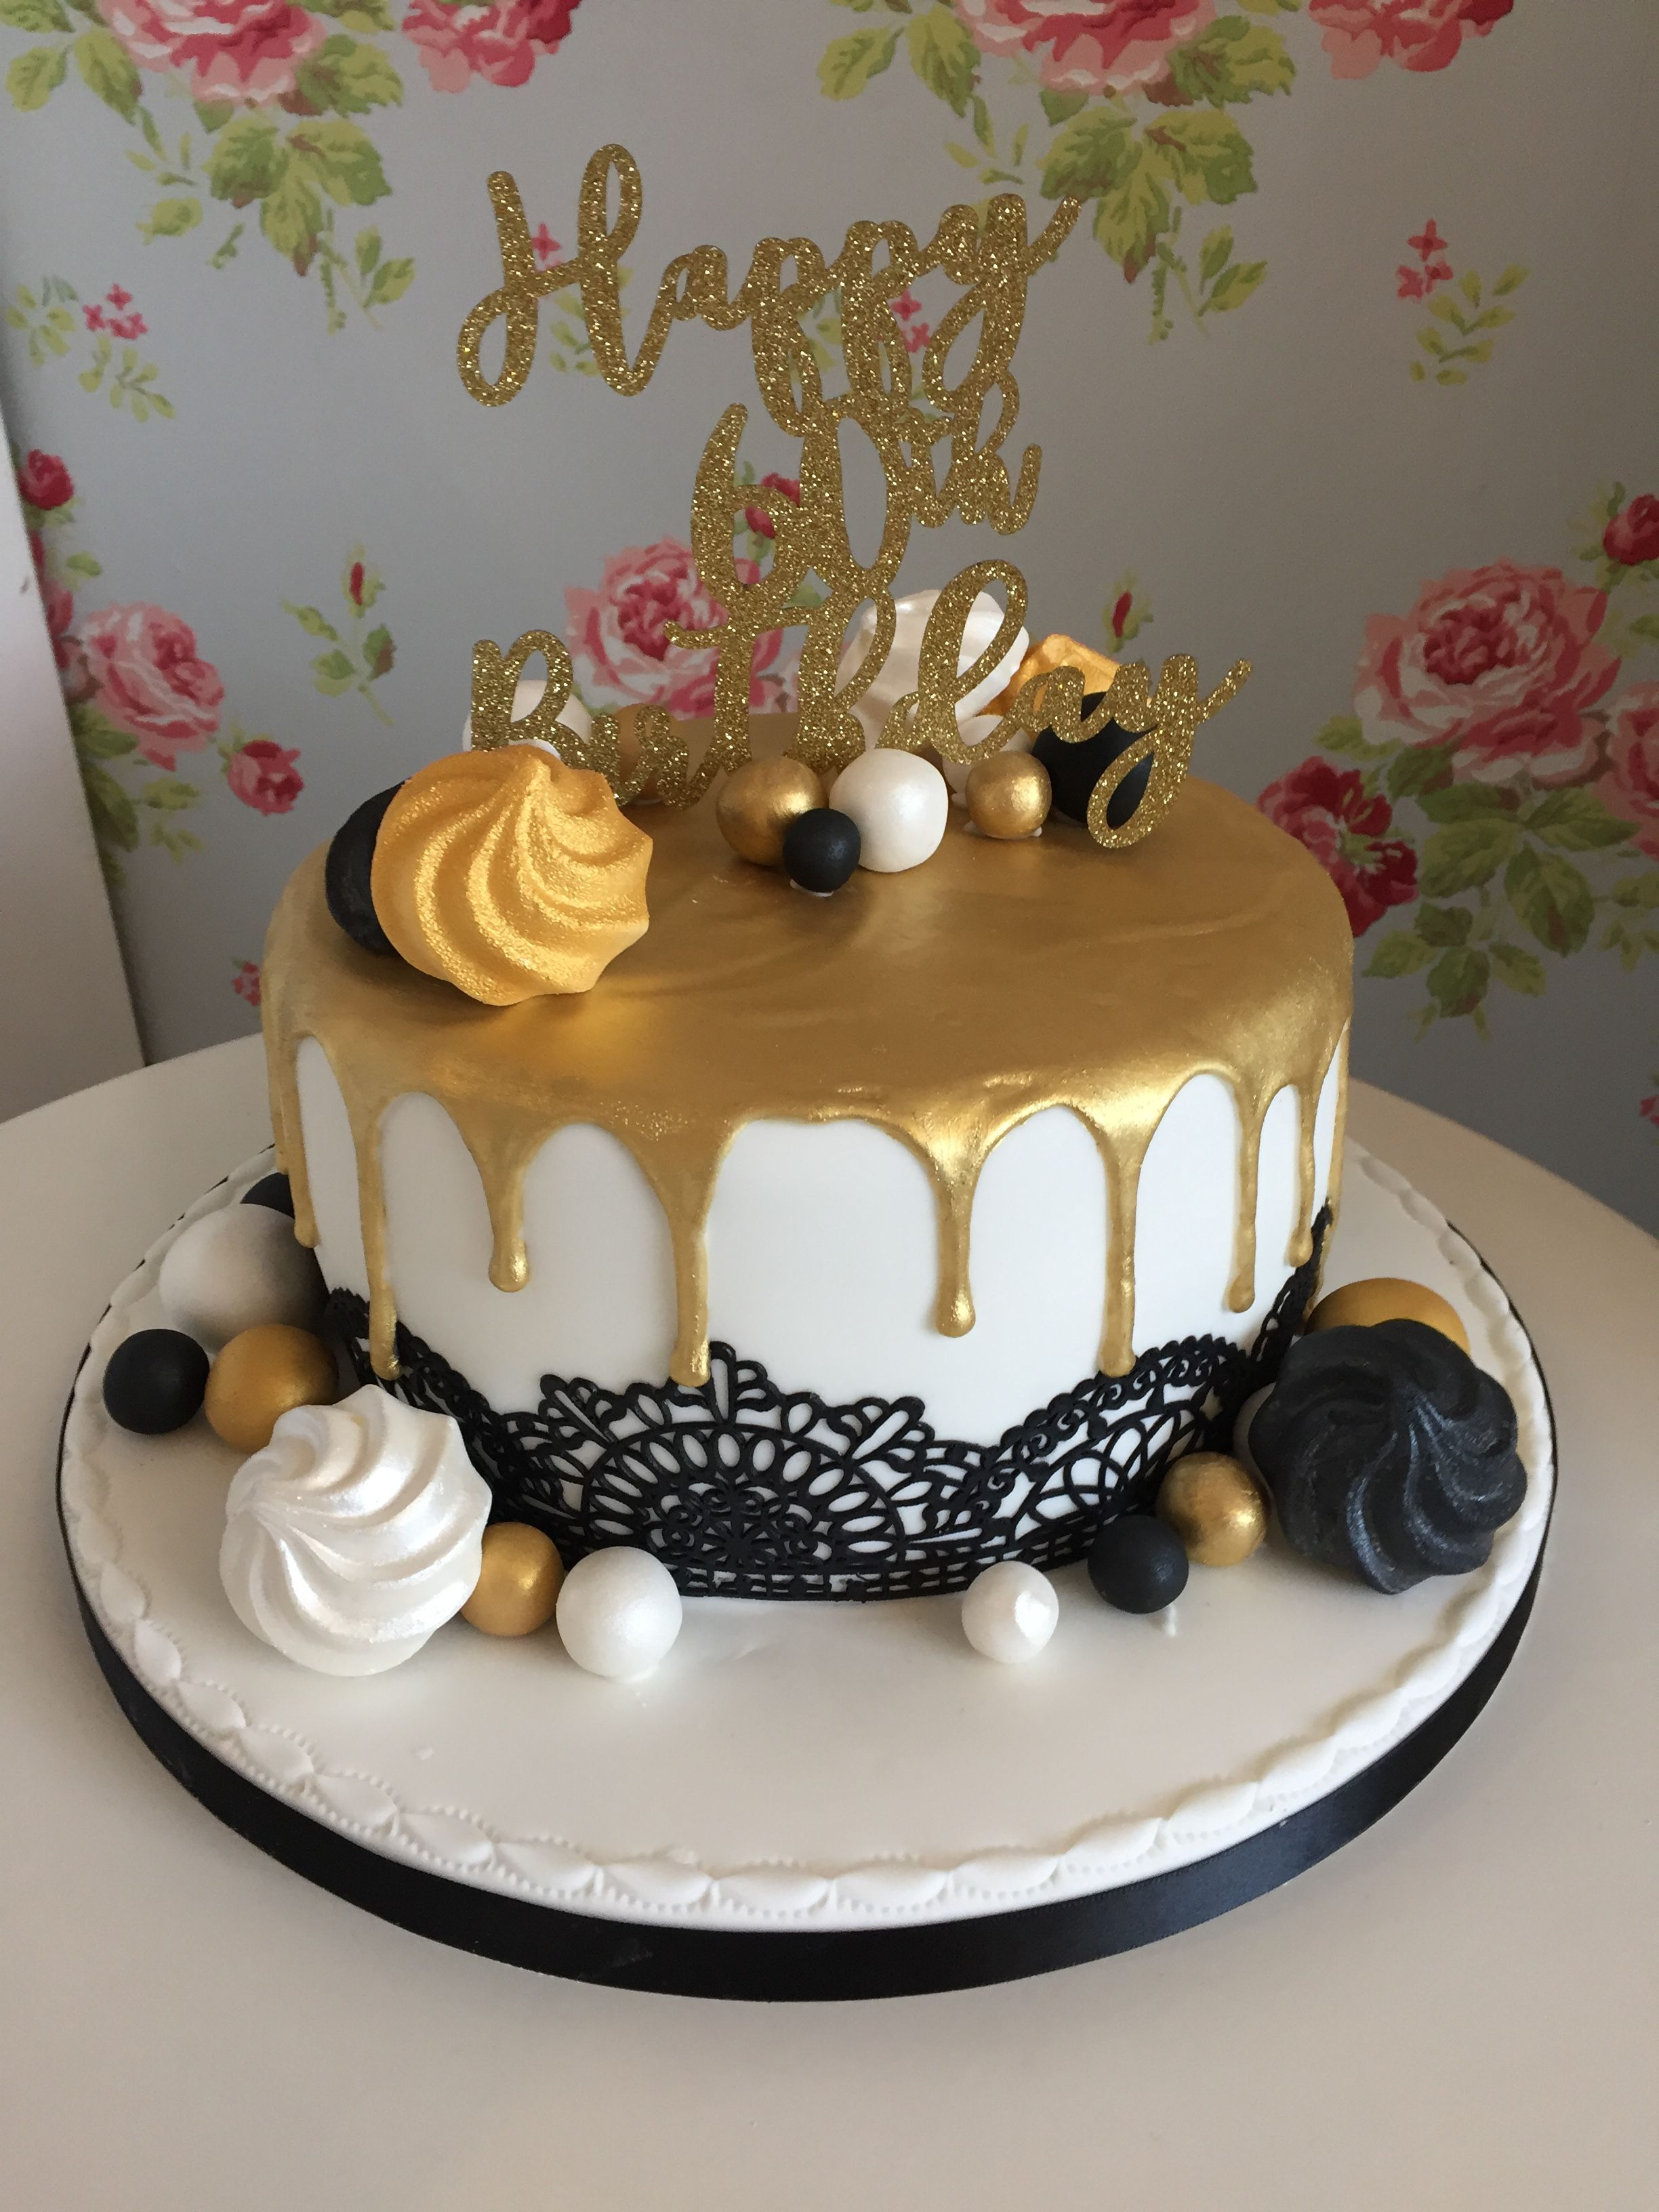 Black White And Gold Drip Cake